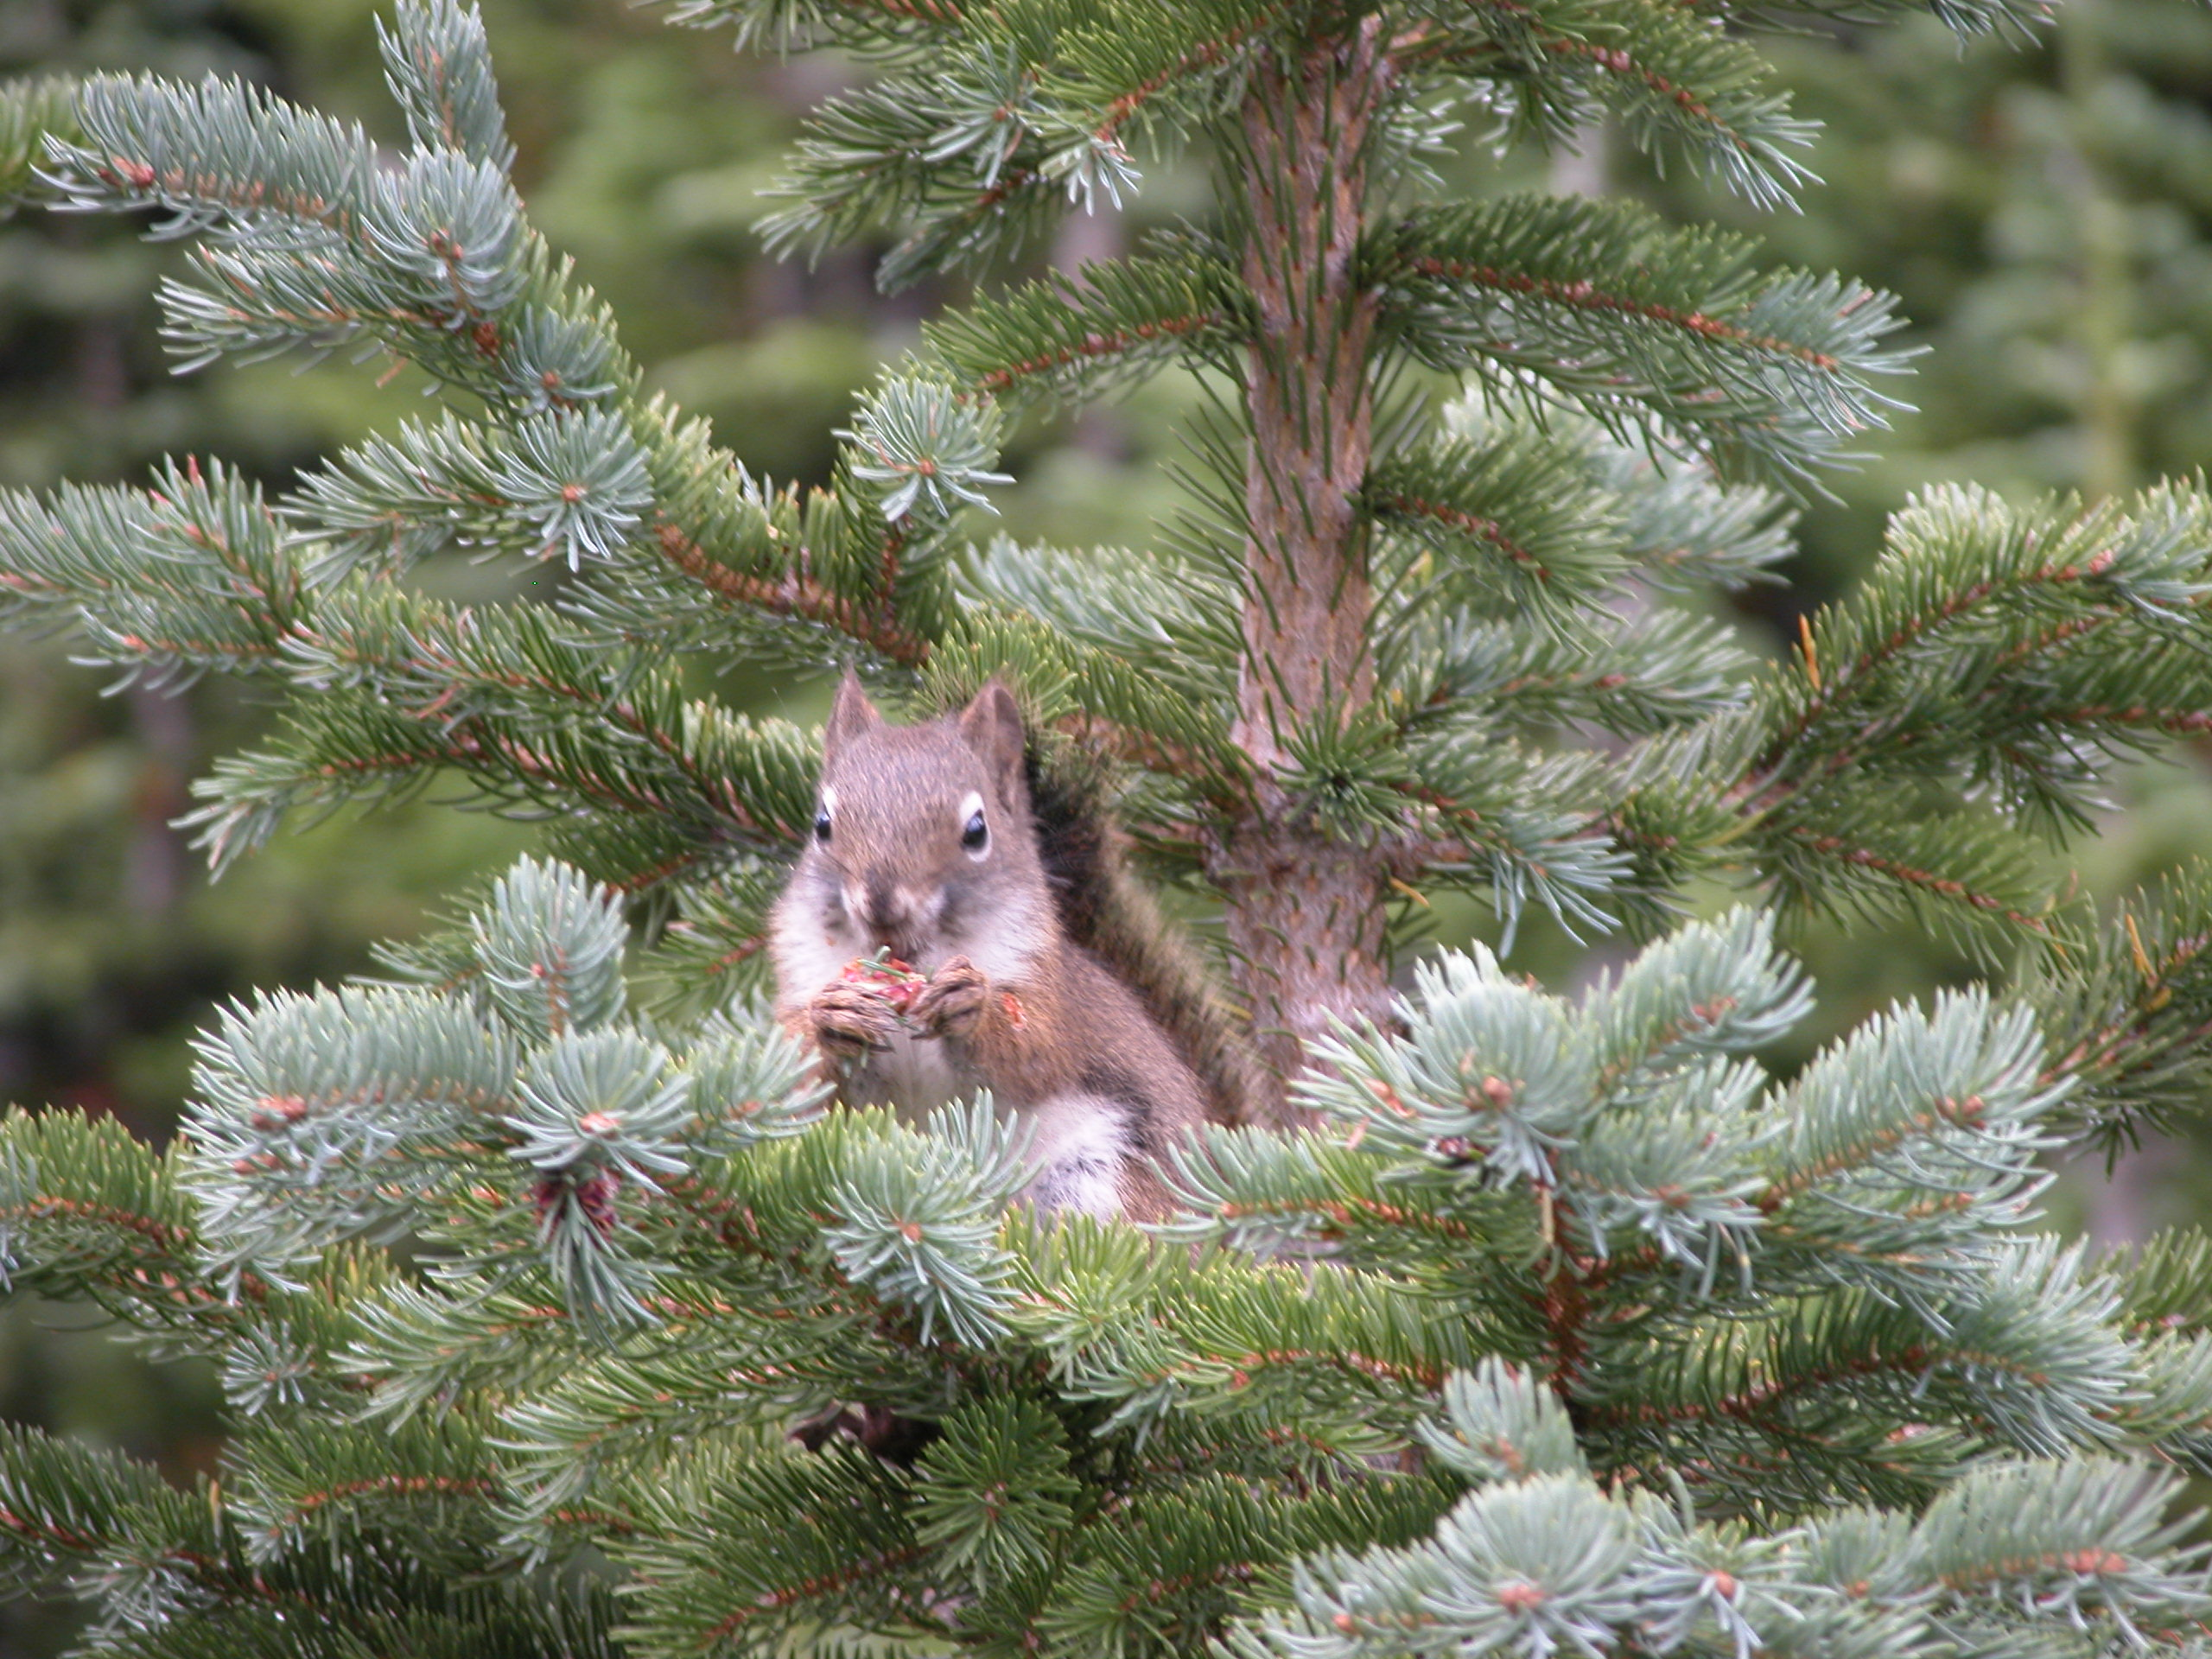 Red squirrel eating spruce pollen cone